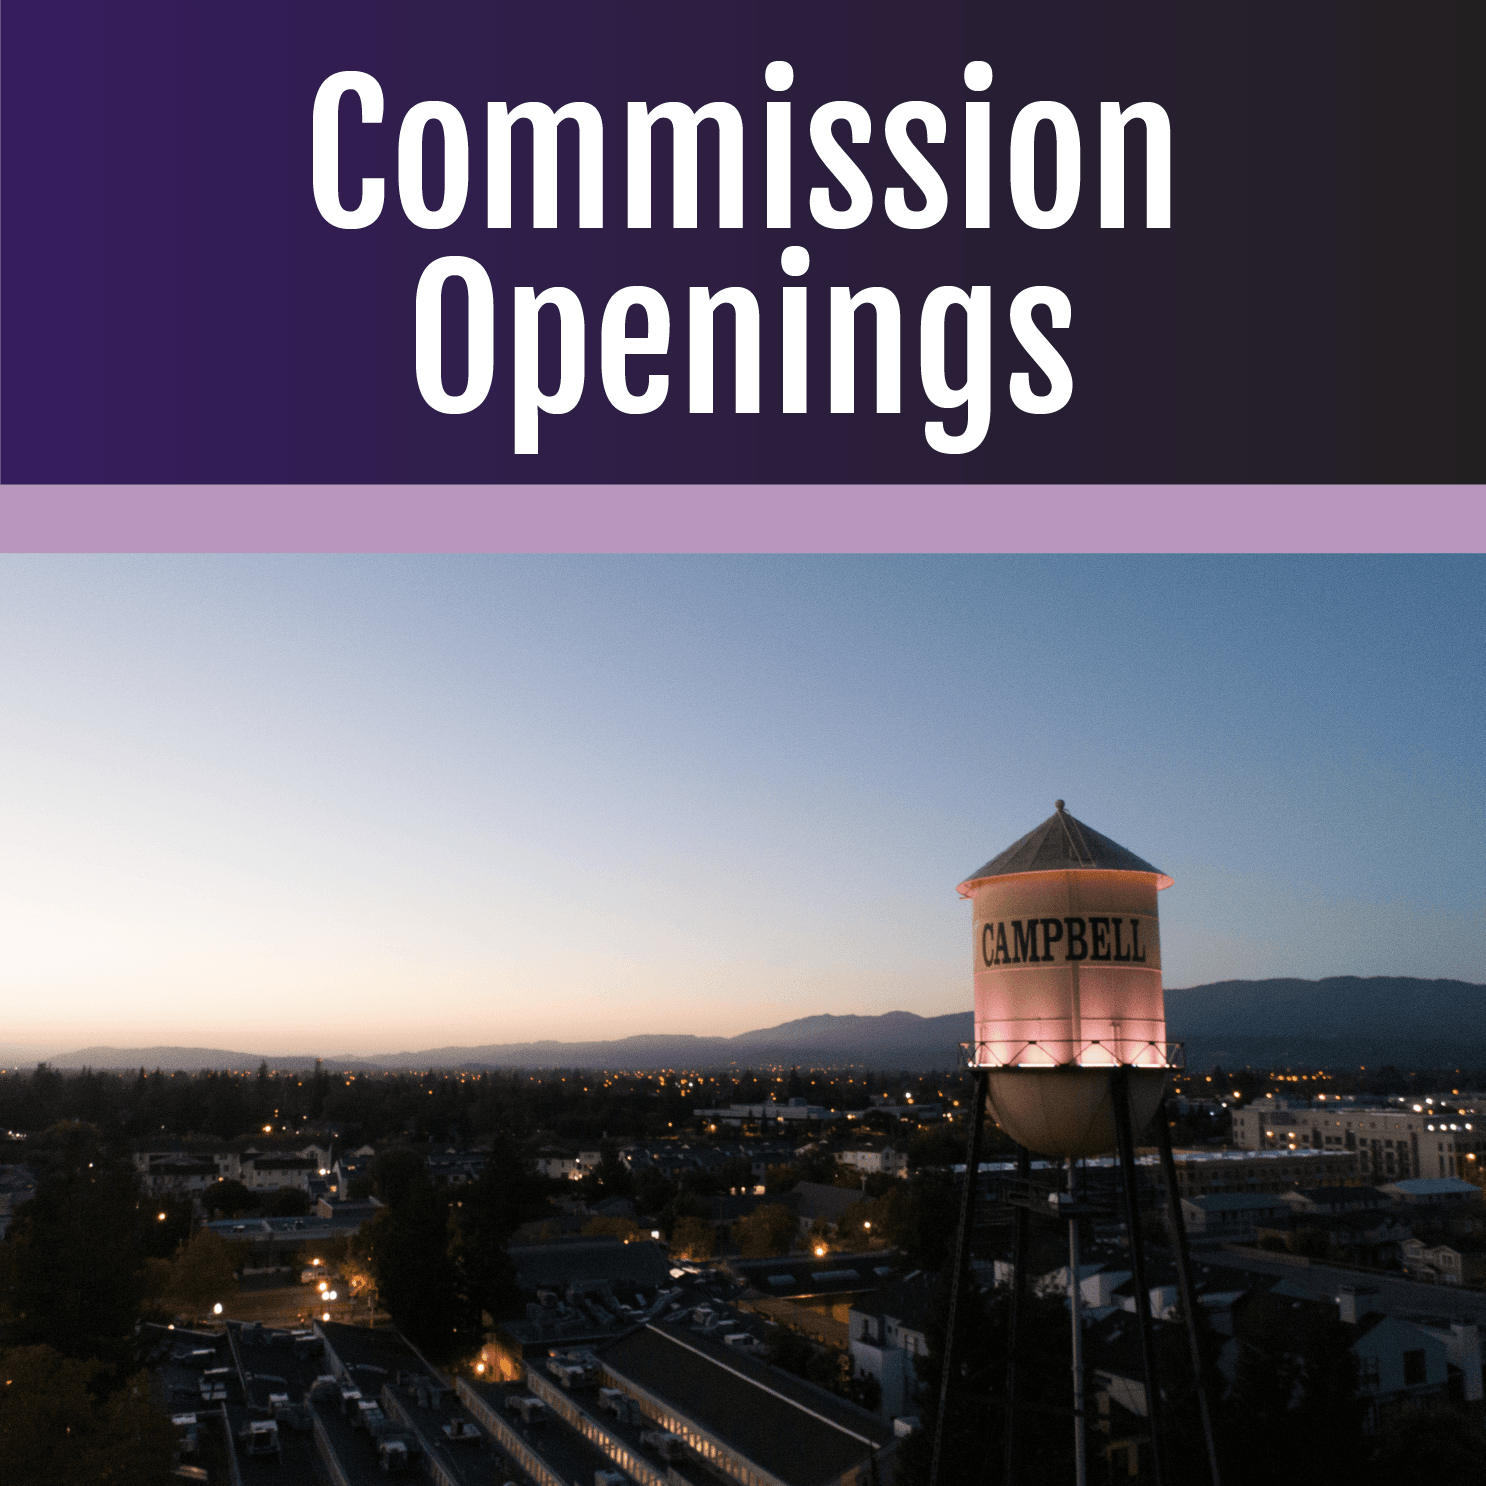 Commission Openings